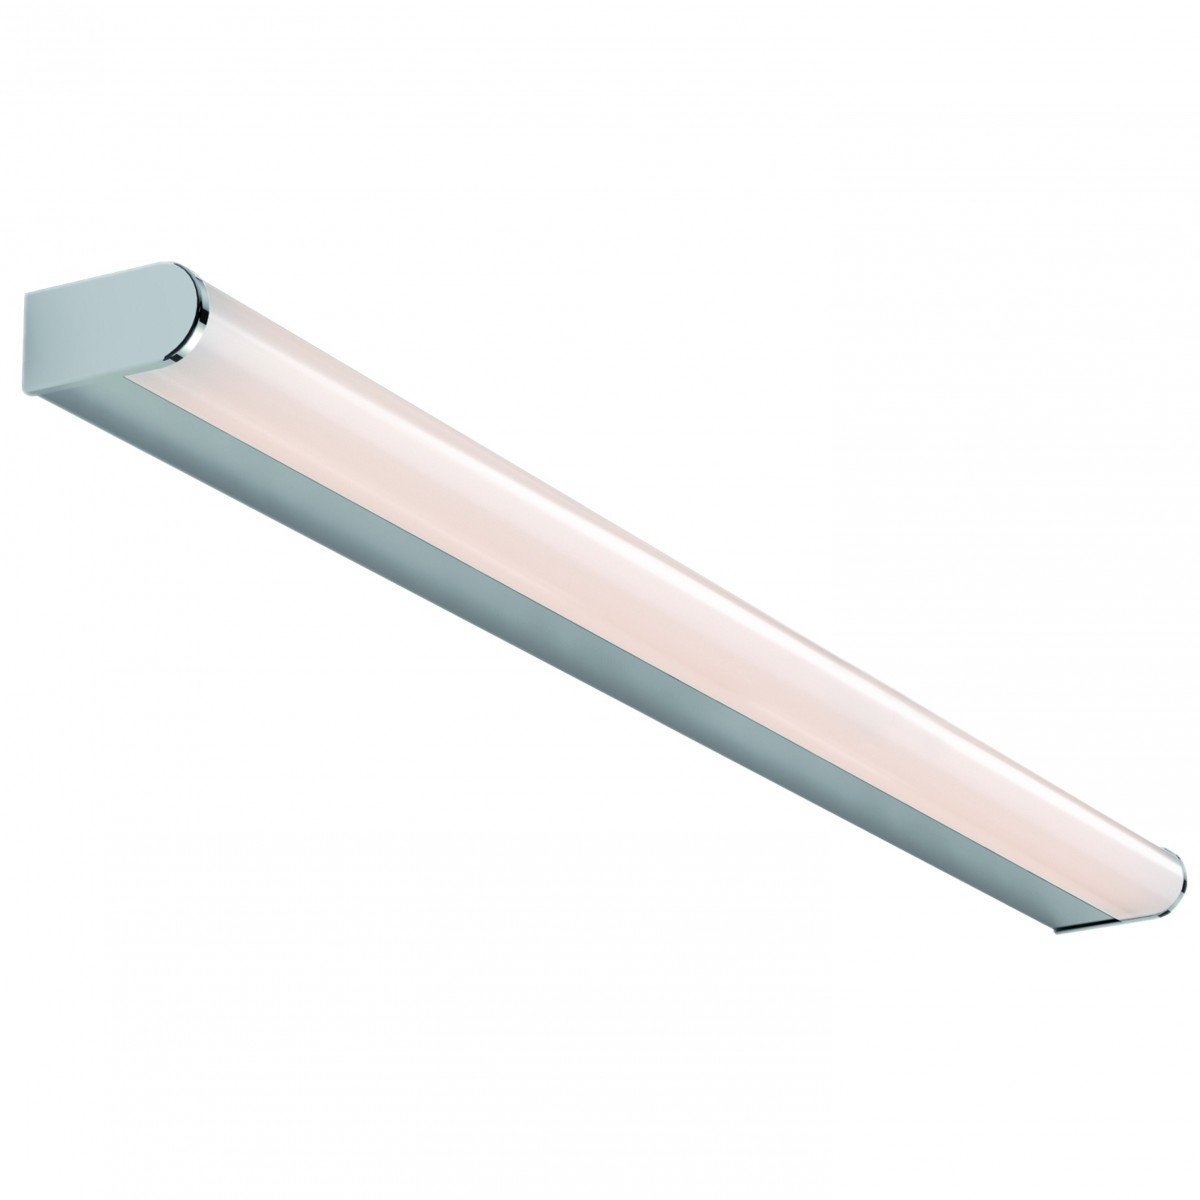 Aplique Baño Exo Lighting Sheid Aplique De Pared Baño Cromo Led 12w Apliques De Pared LÁmparas Exo Lighting